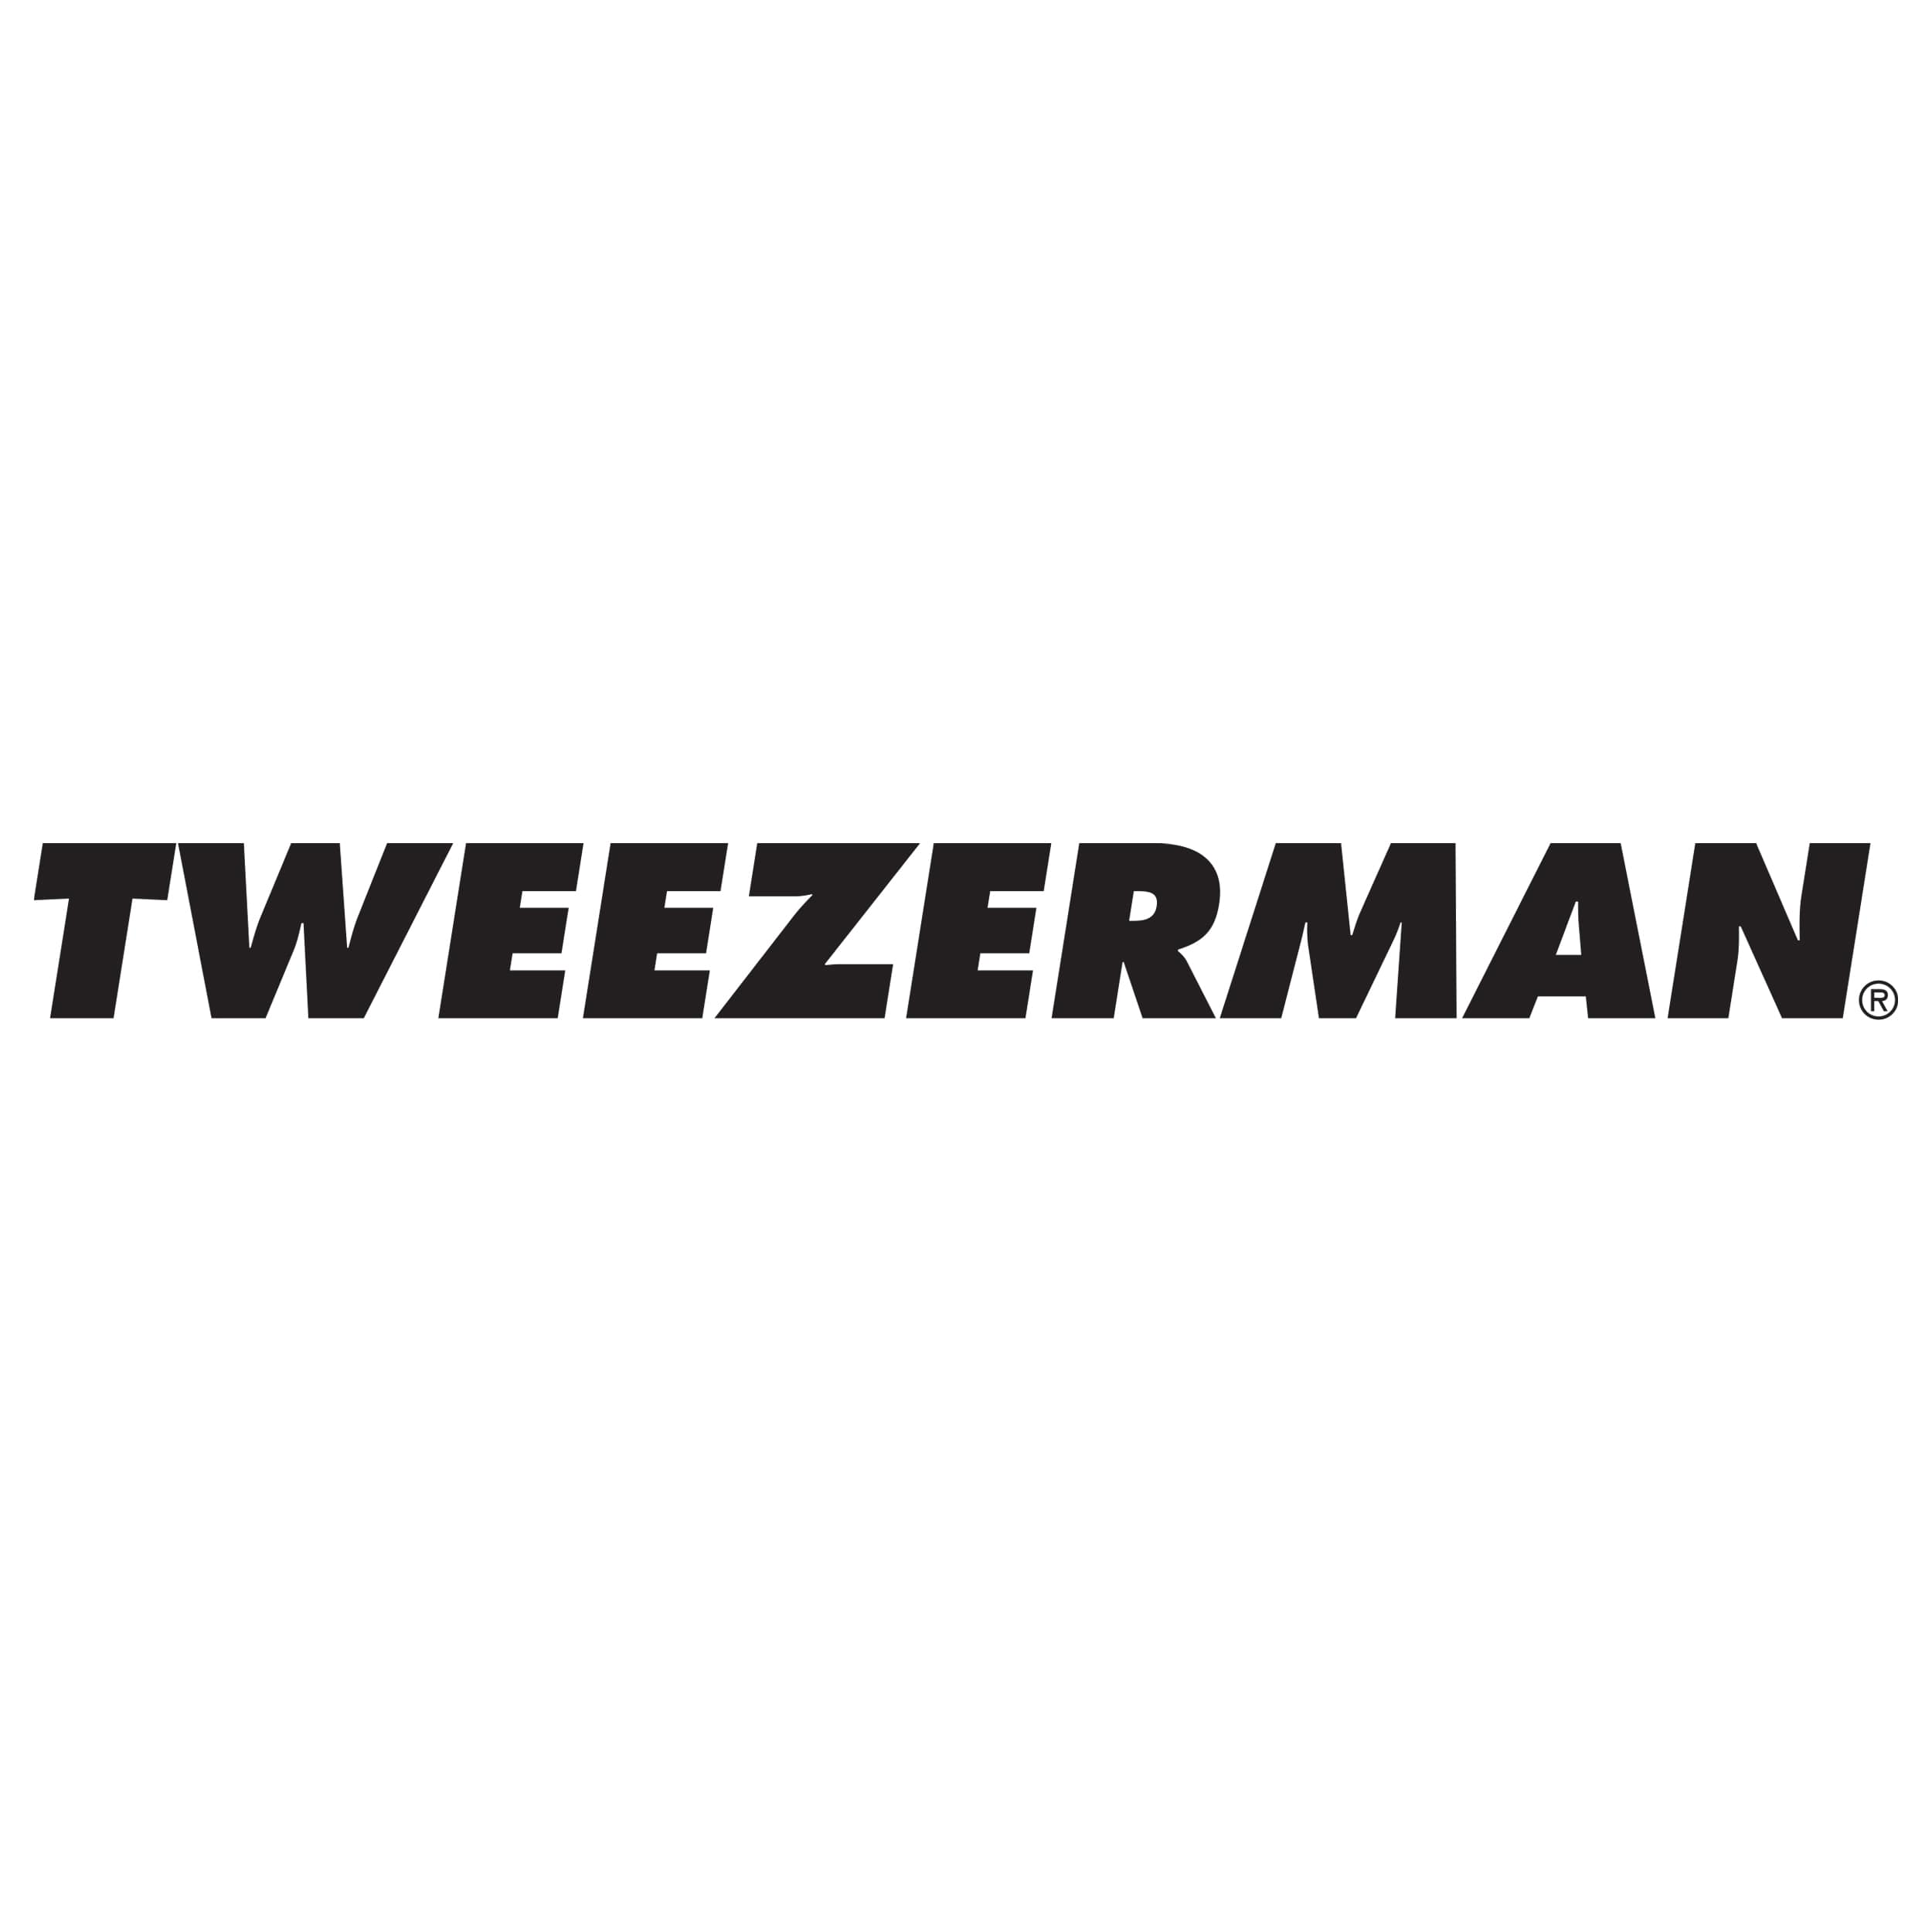 Image of two boxes of Tweezerman Callus Shaver Blades on white background